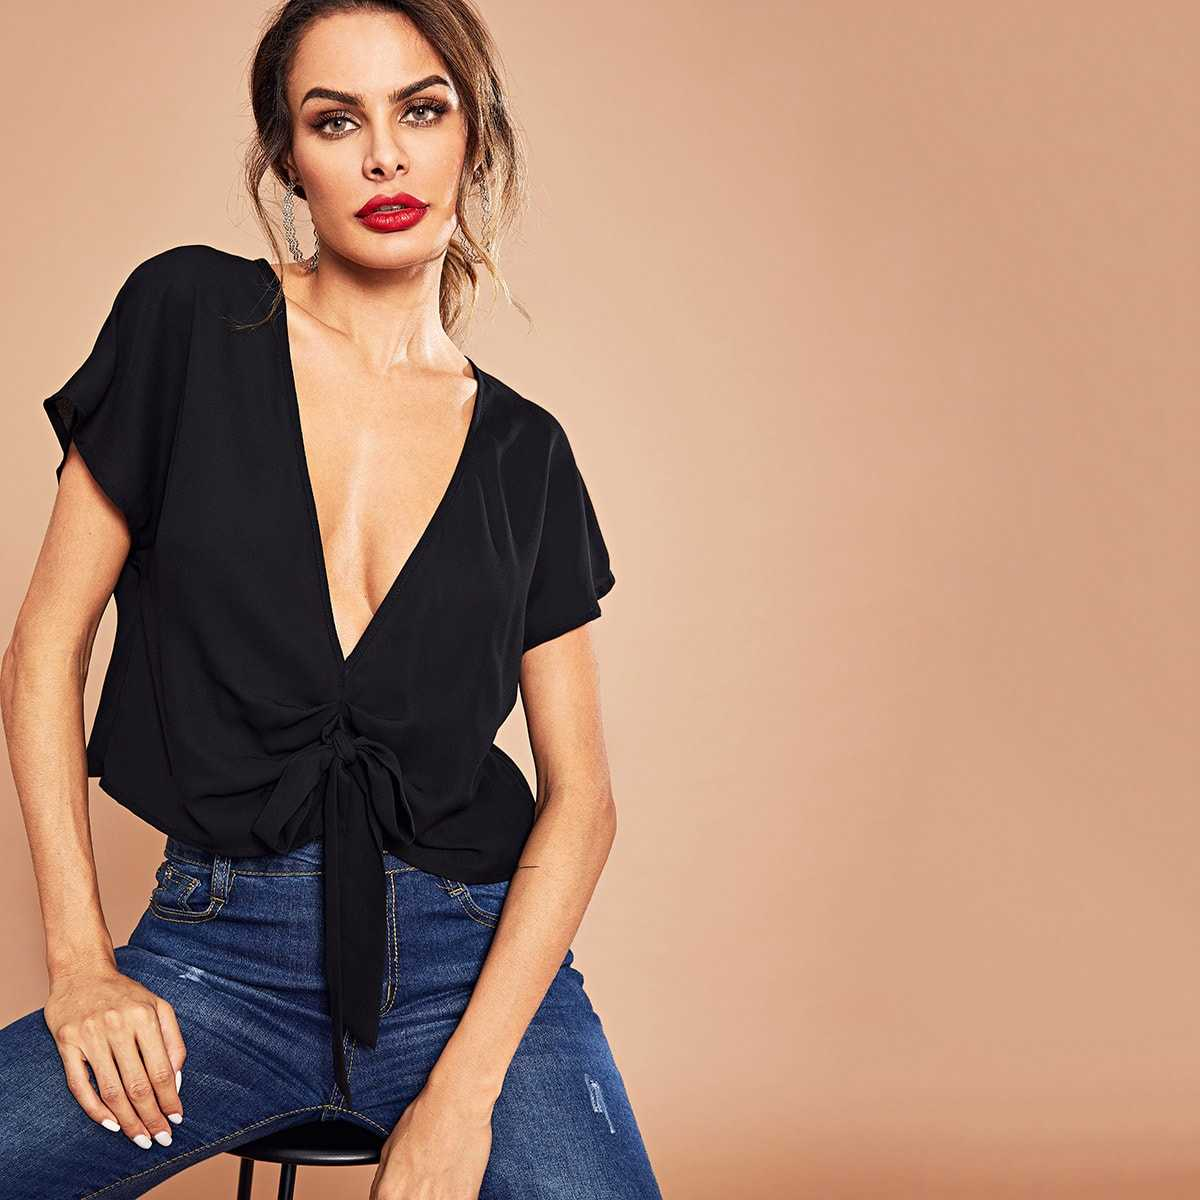 Knot Front Ruched Plunge Solid Top in Black by ROMWE on GOOFASH